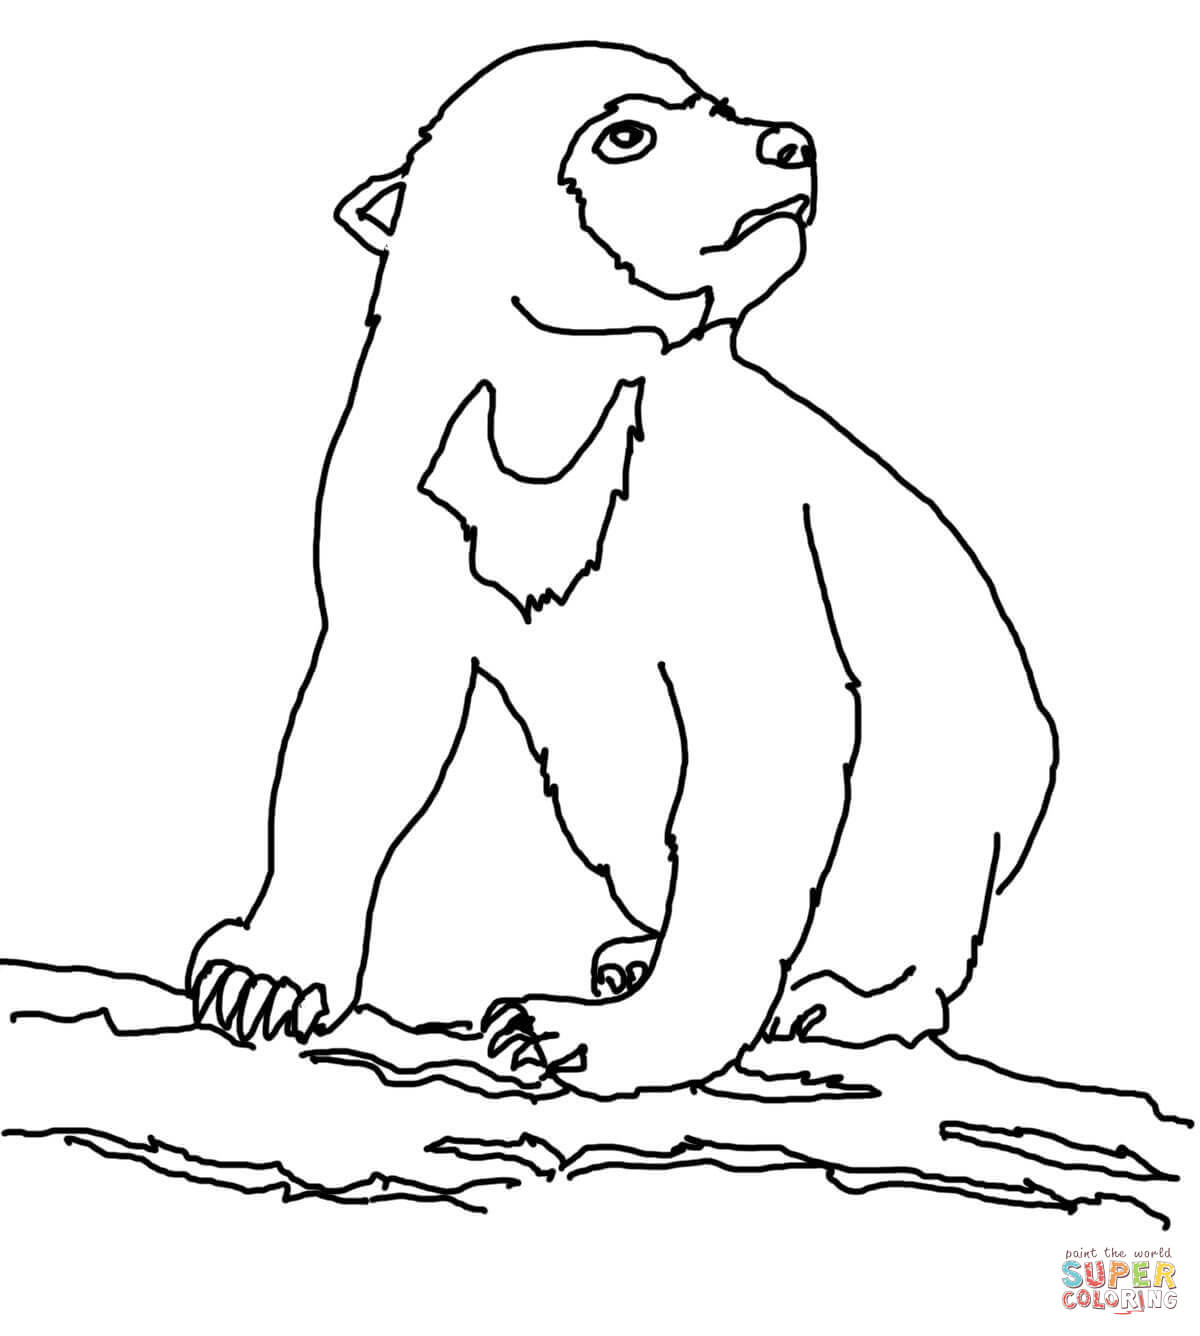 bear cub coloring pages wild animal coloring pages playful bear cubs coloring bear coloring cub pages